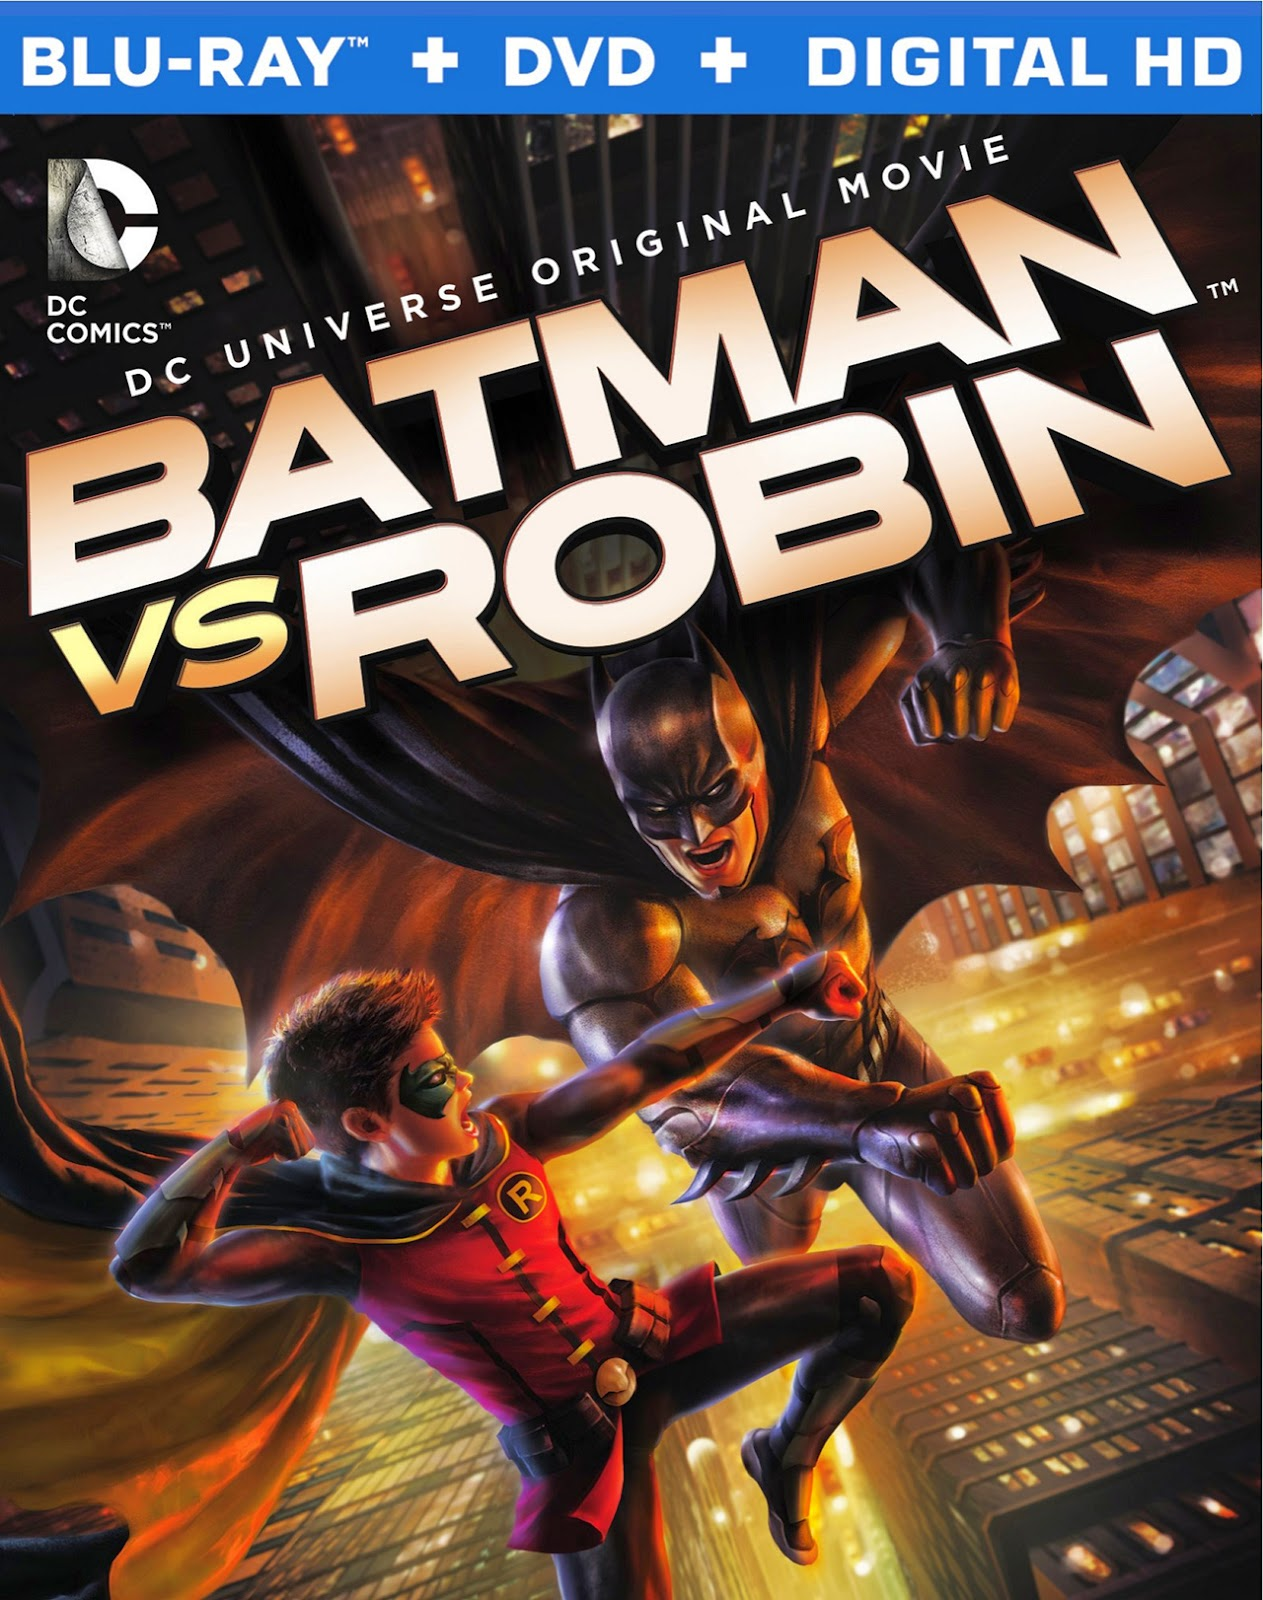 Batman vs Robin (2015) 1080p BD25 Cover Caratula